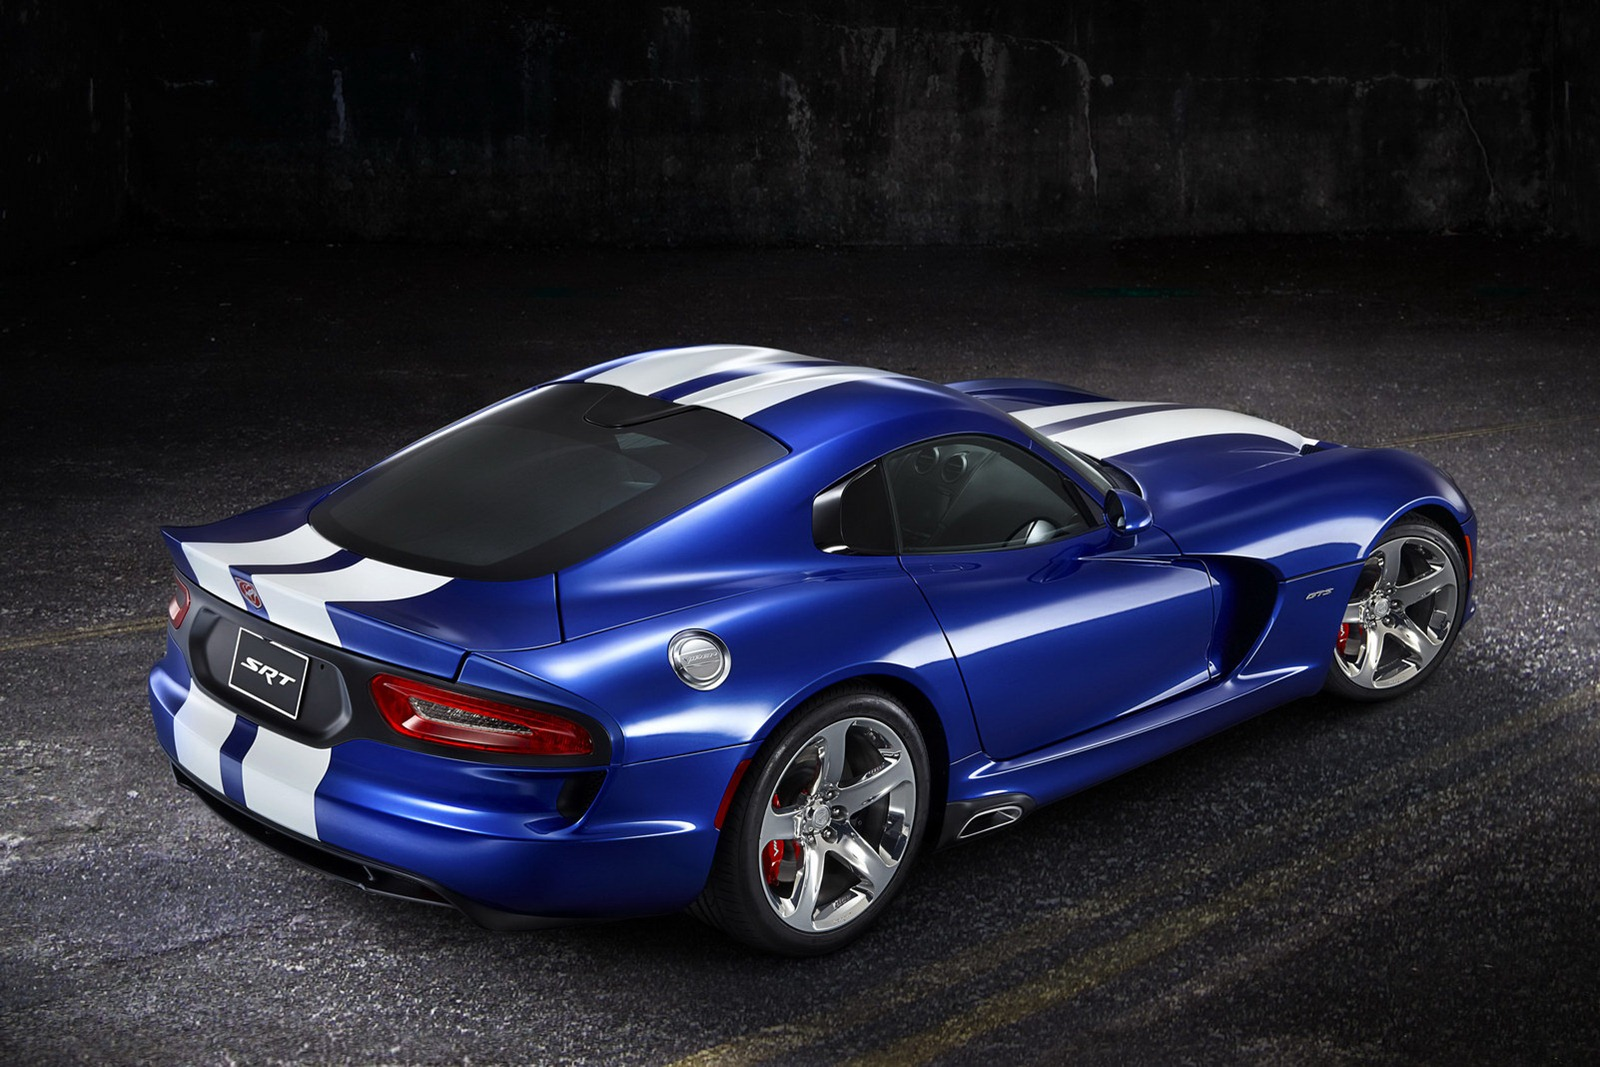 2013 SRT Viper 1 2013 SRT Viper is luxurious and clearly expensive